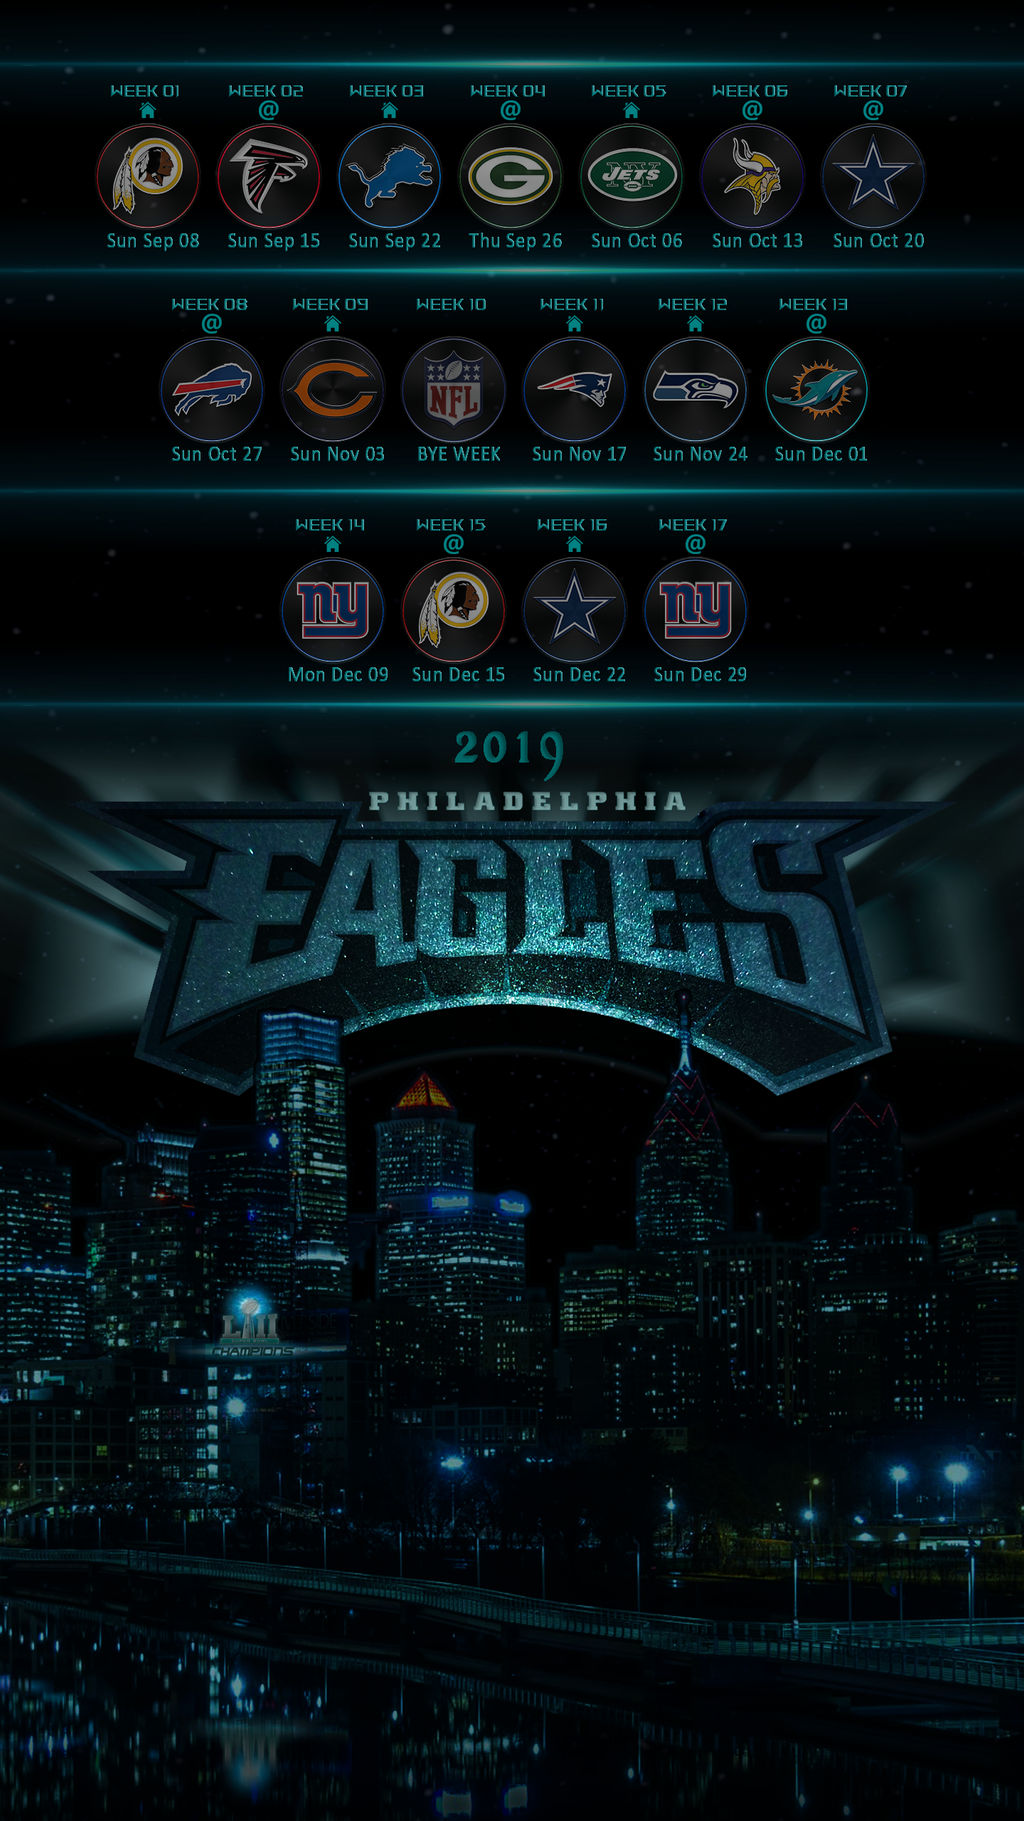 Philadelphia Eagles Wallpaper 2019 Phone Sched By Eaglezrock